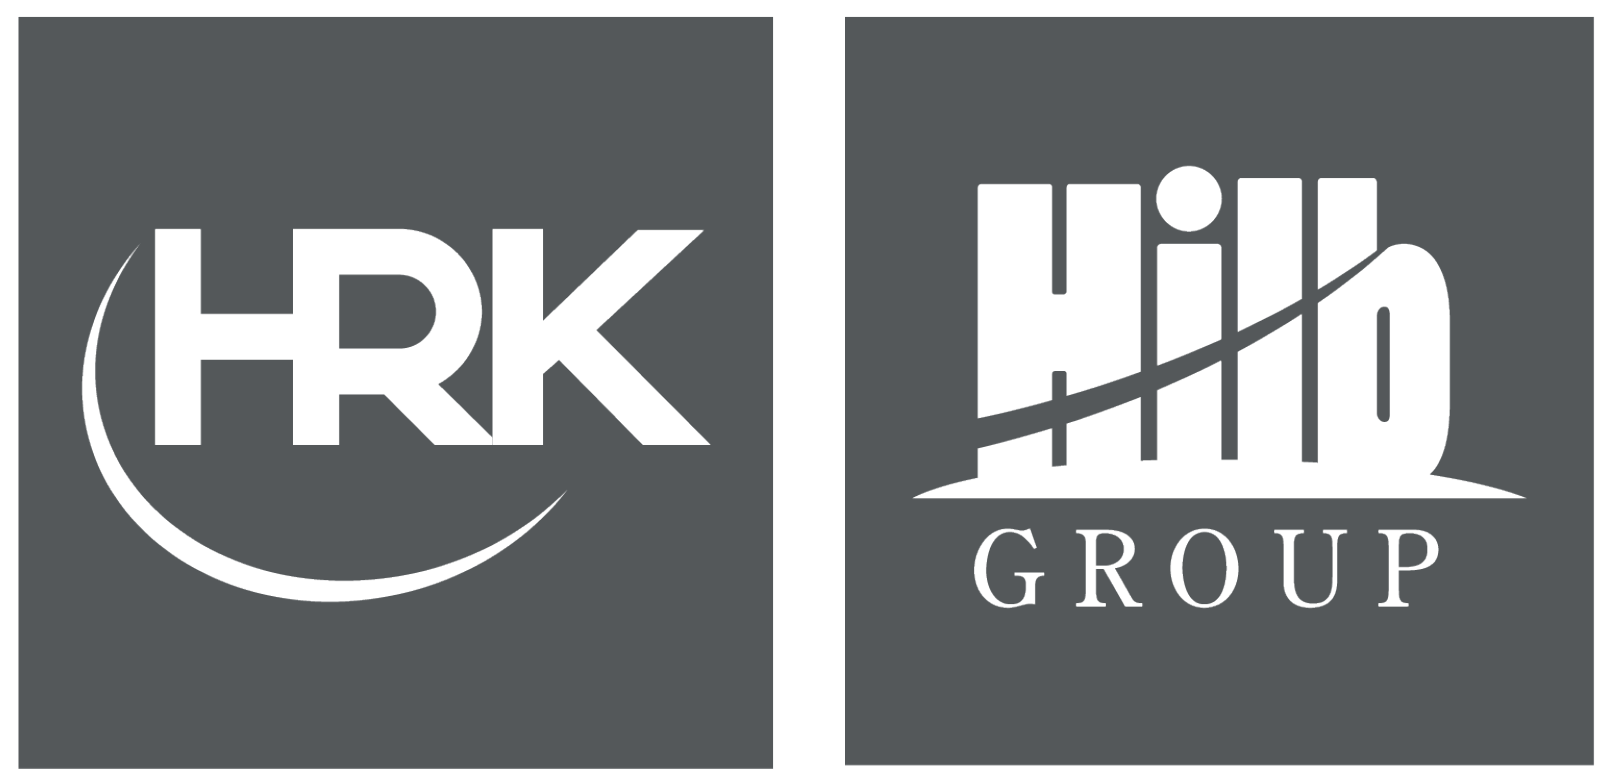 HR Knowledge and Hilb Co-branded Logo